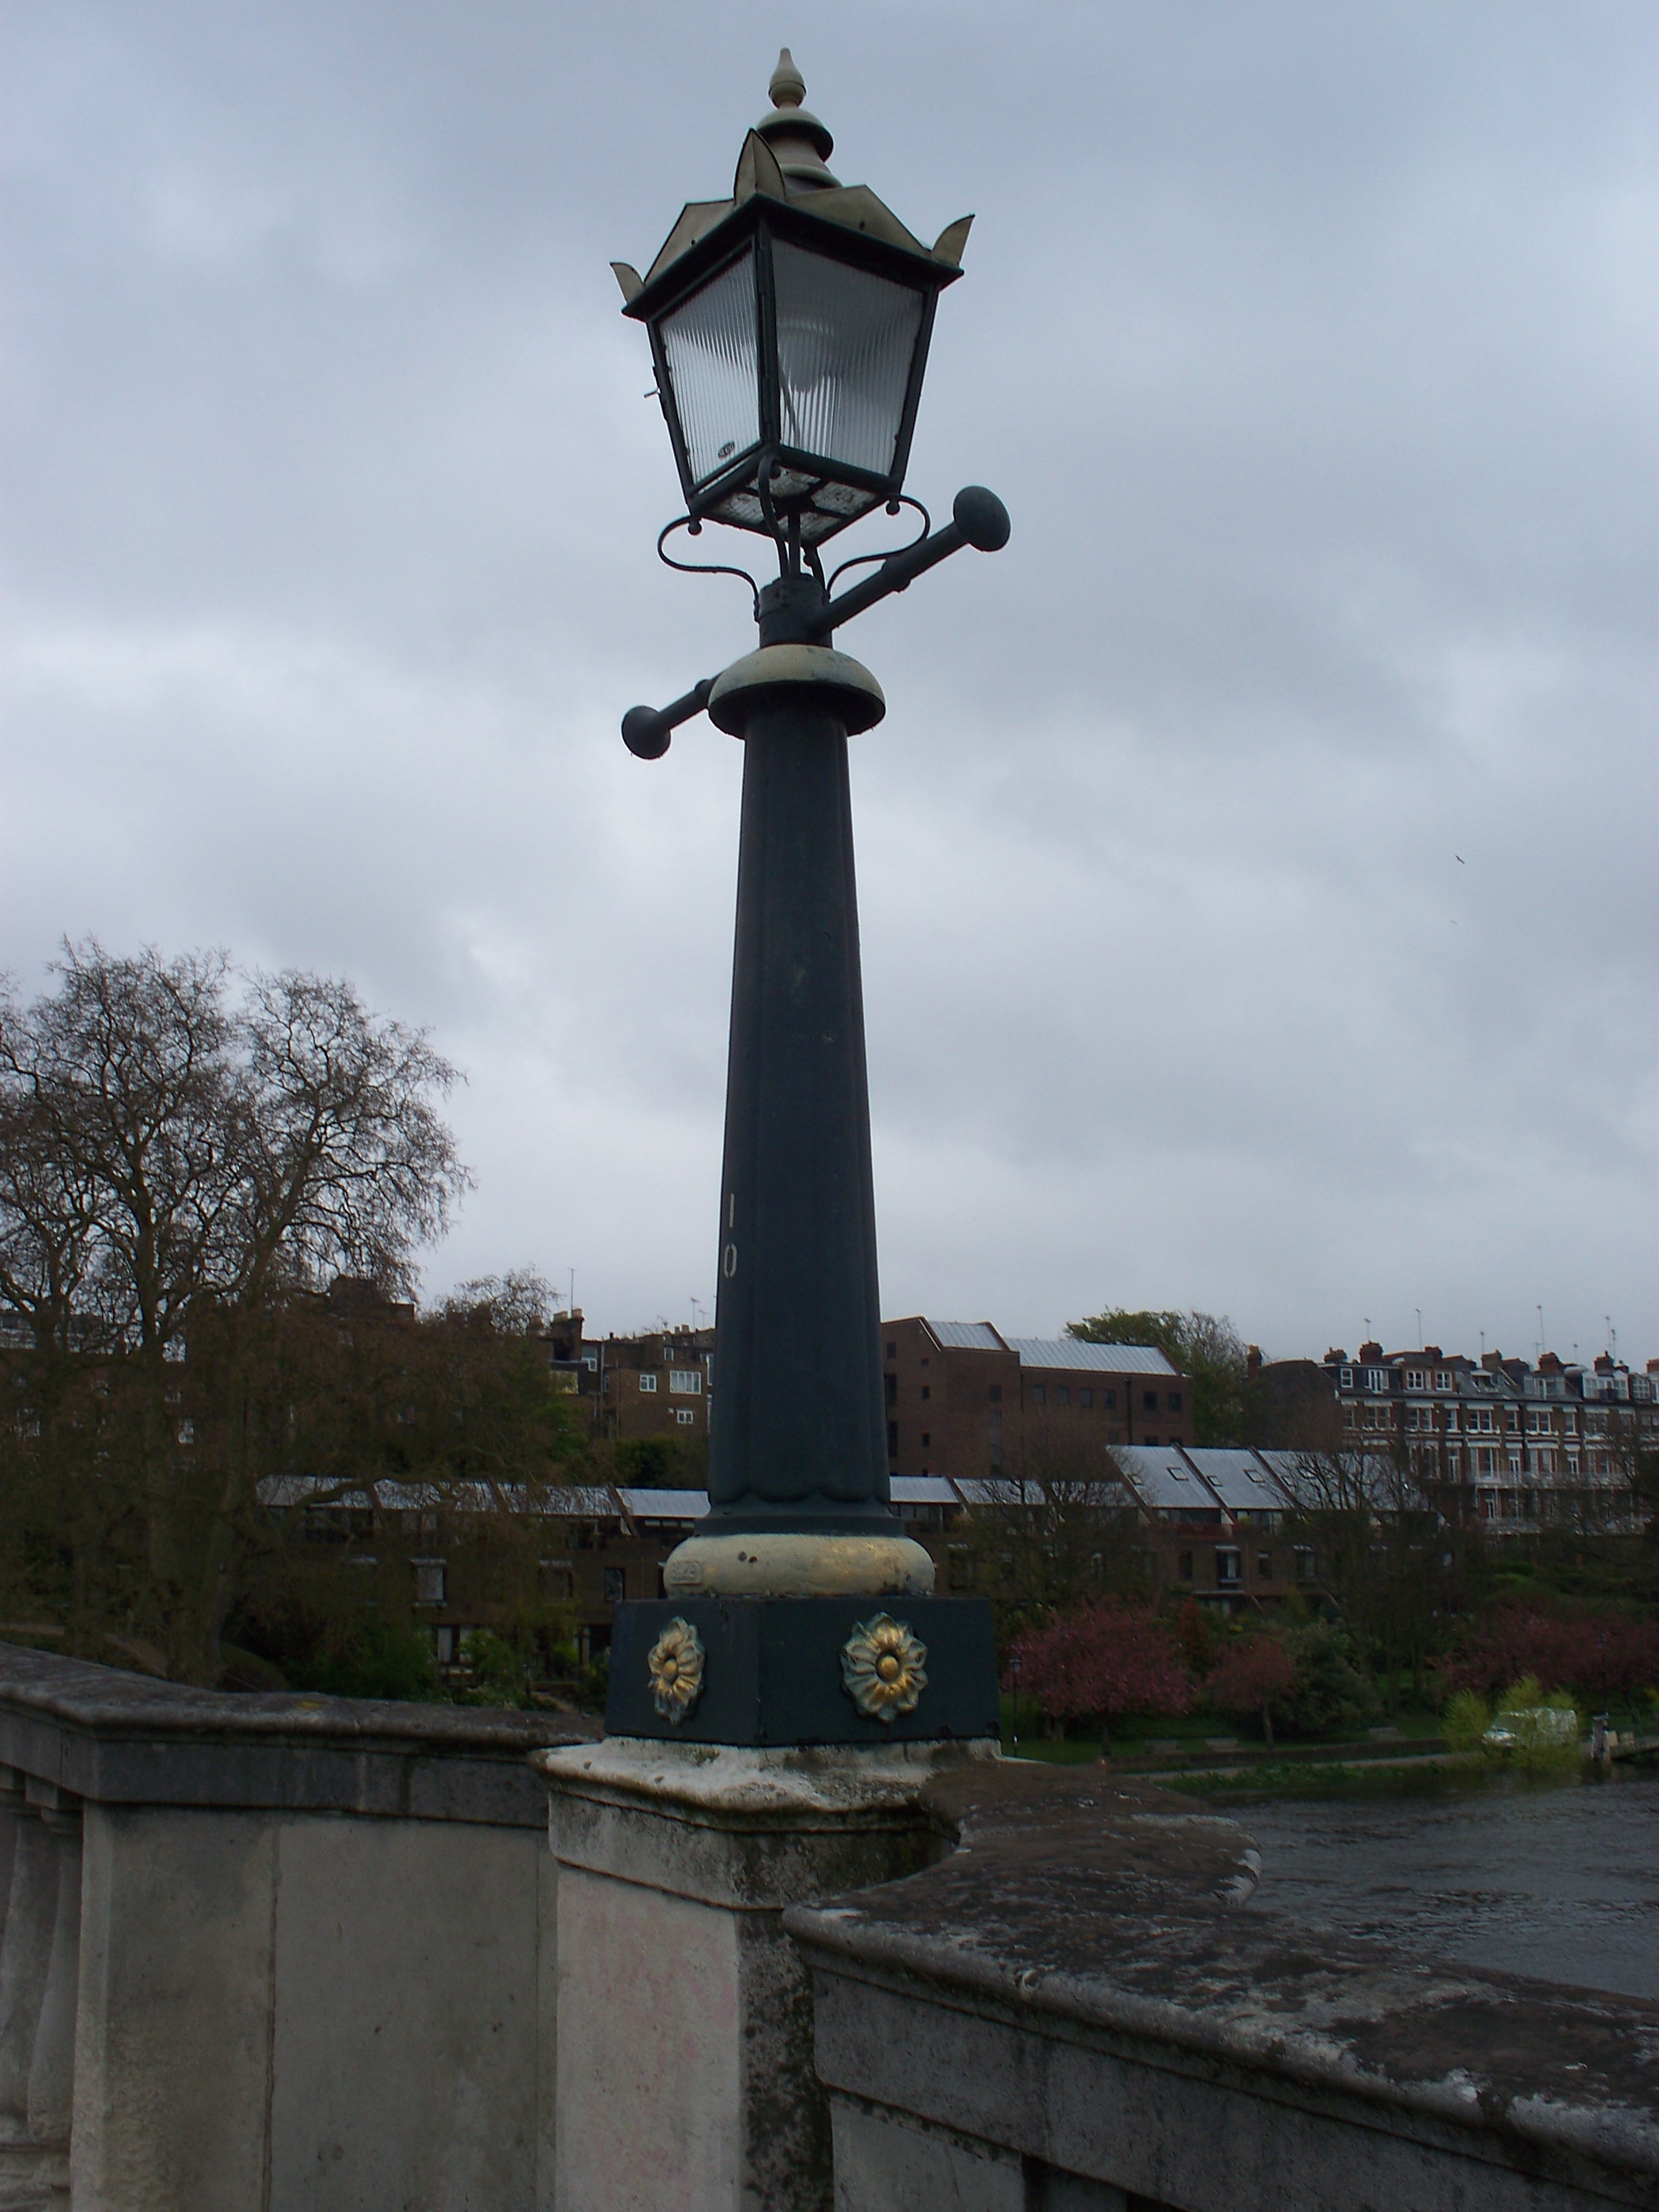 Images Of Old Fashioned Street Lamps